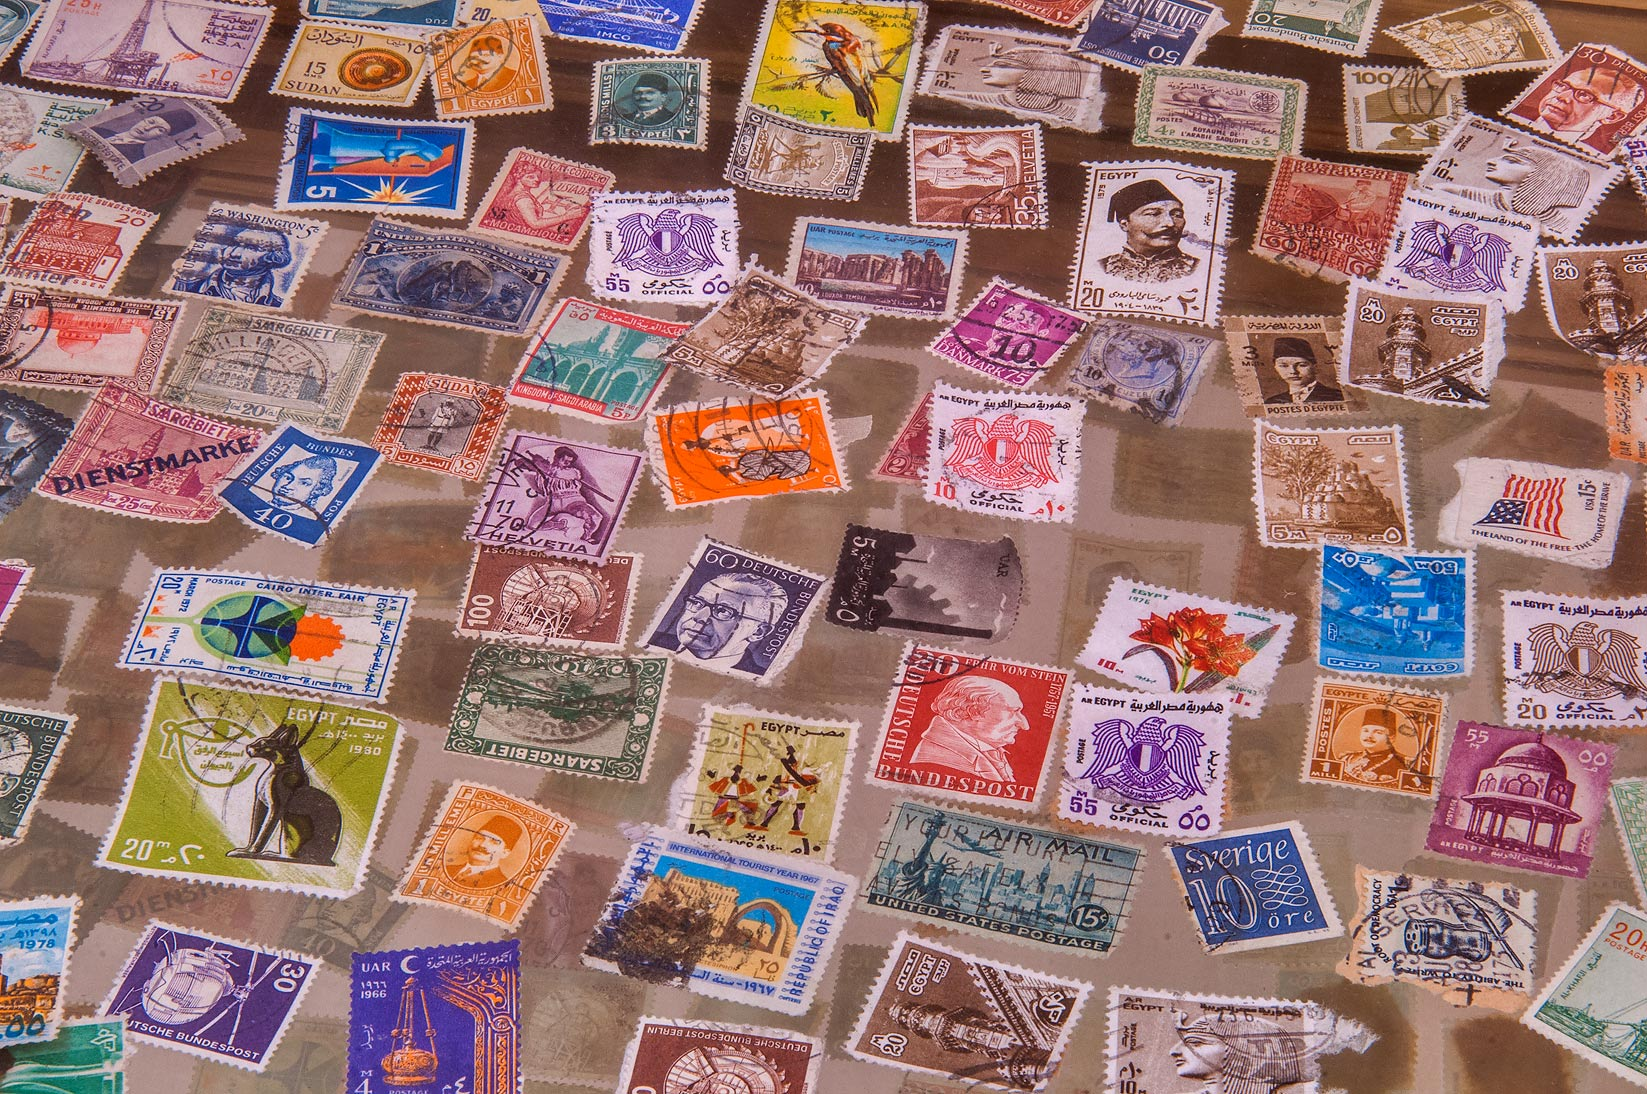 Collection of postal stamps in Sheikh Faisal Bin...Museum near Al-Shahaniya. Doha, Qatar